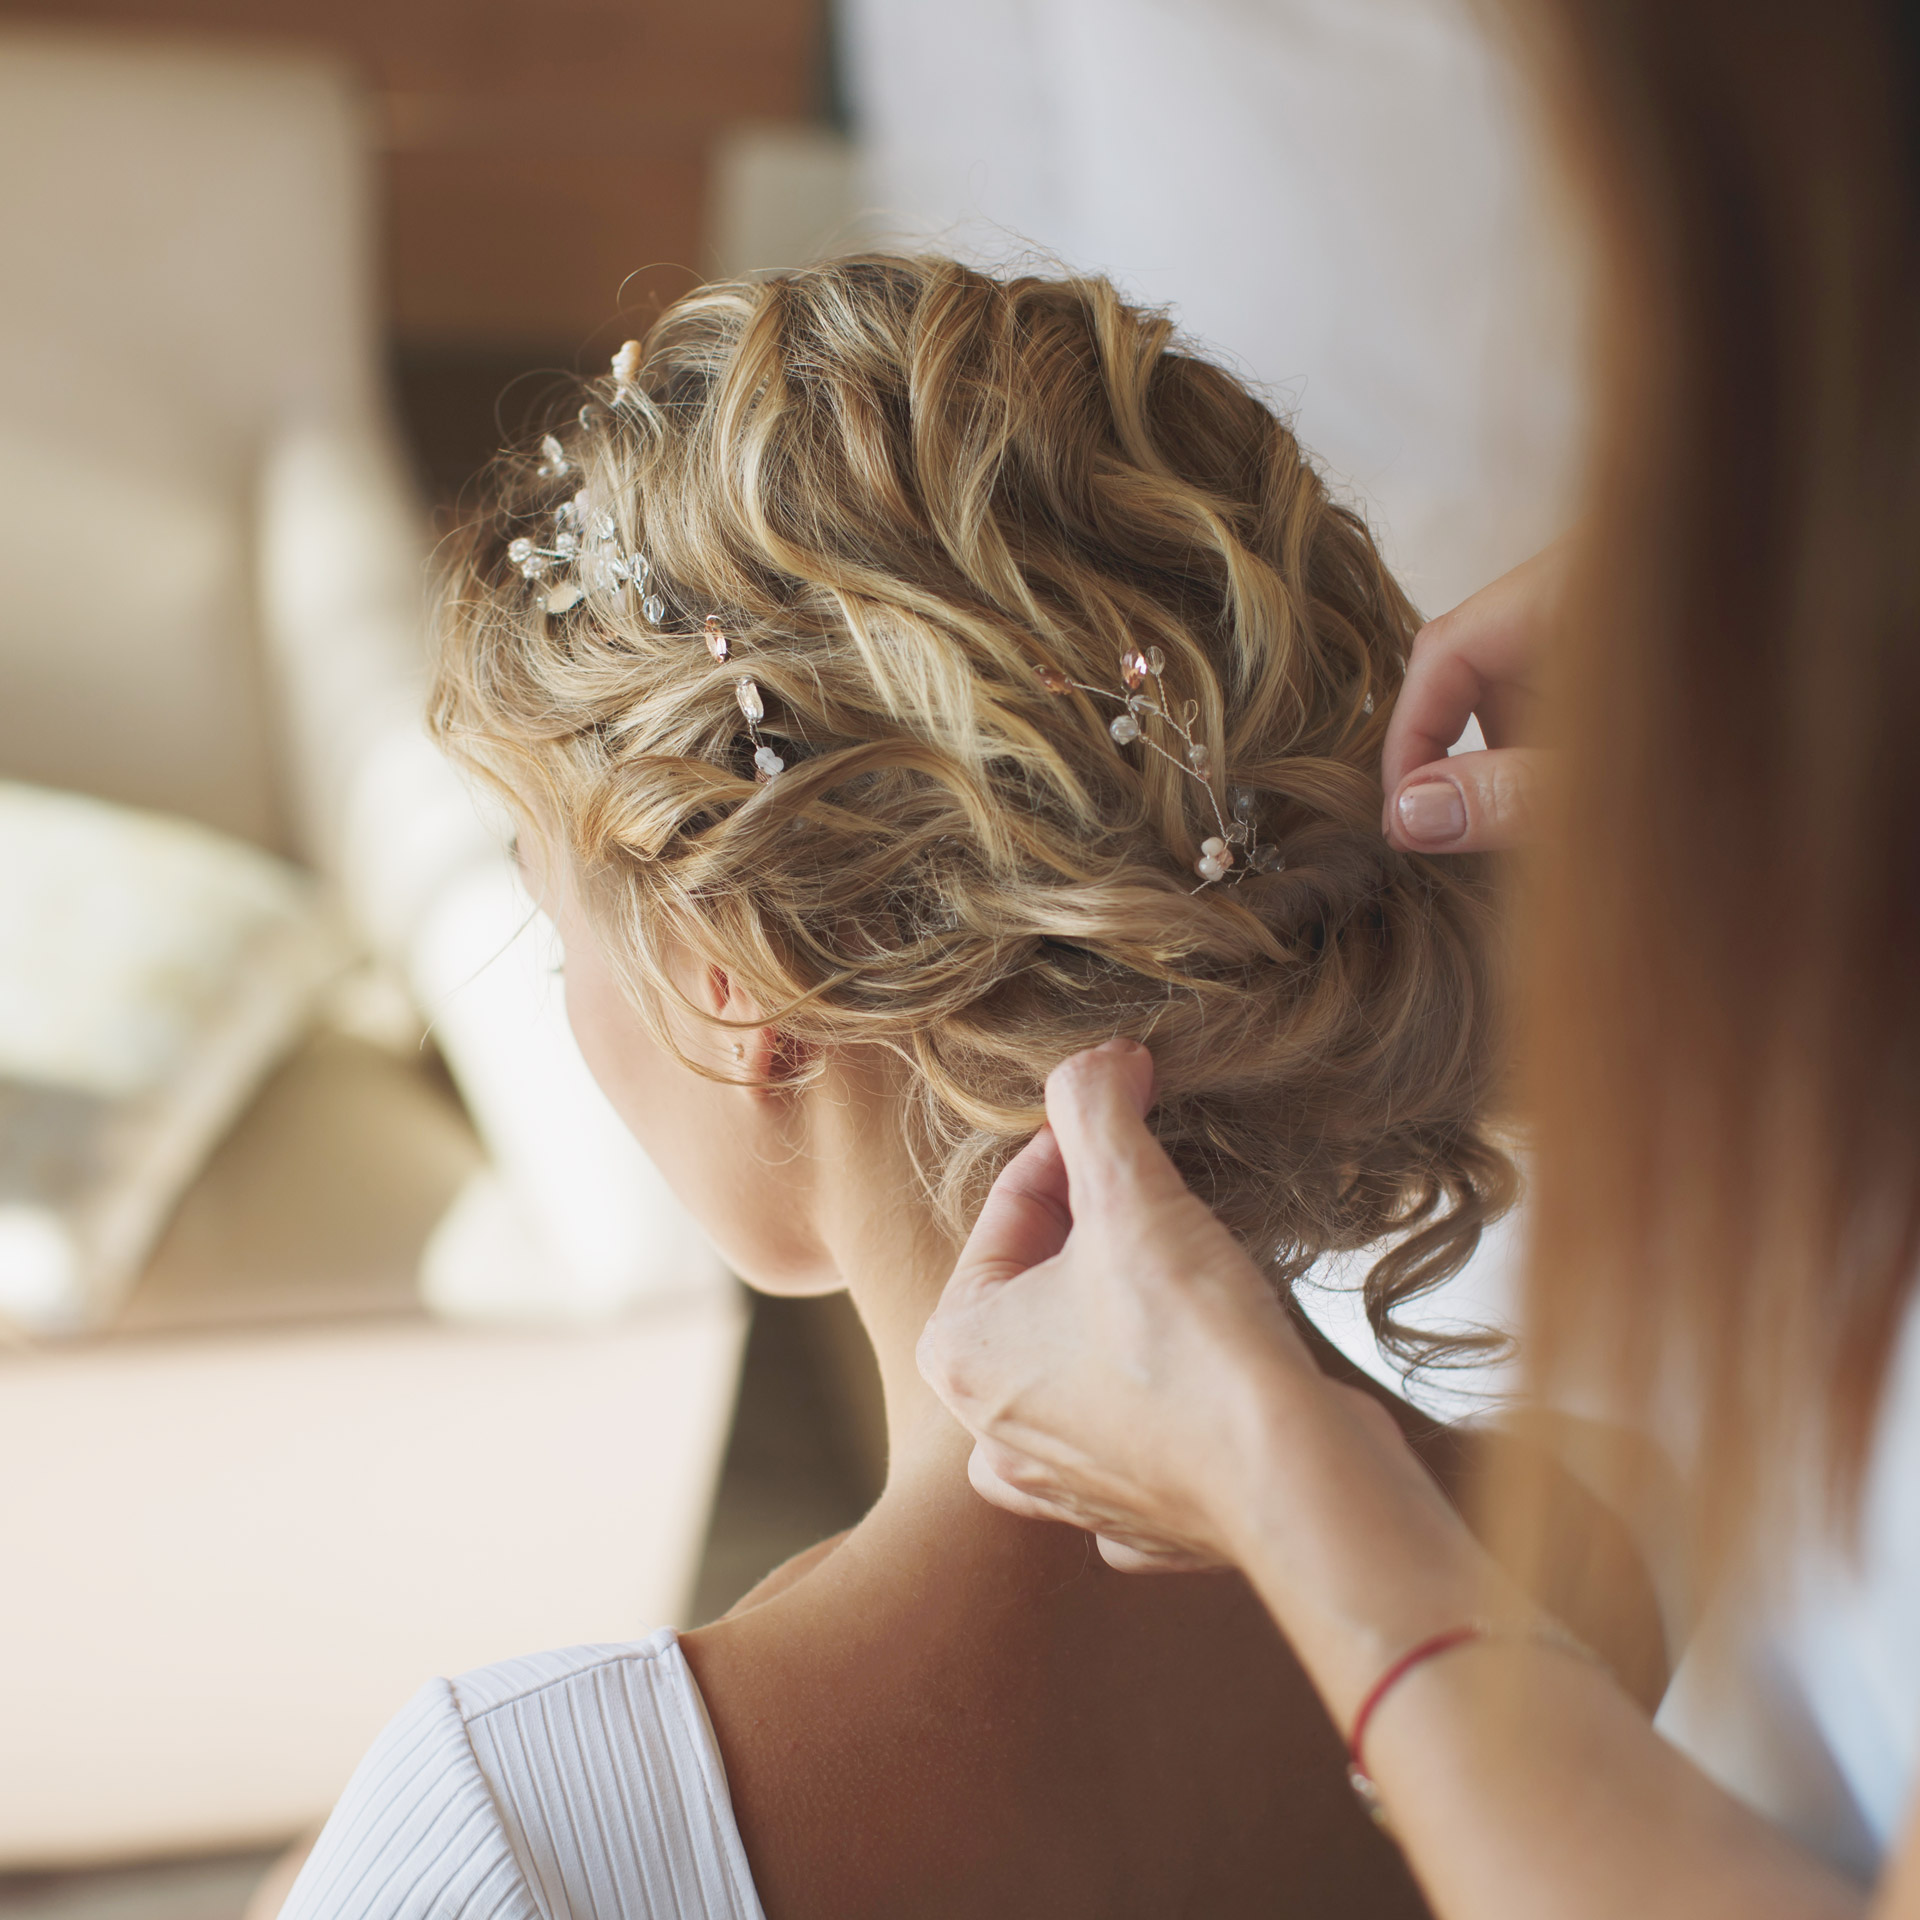 Woman getting her hair styled for her wedding